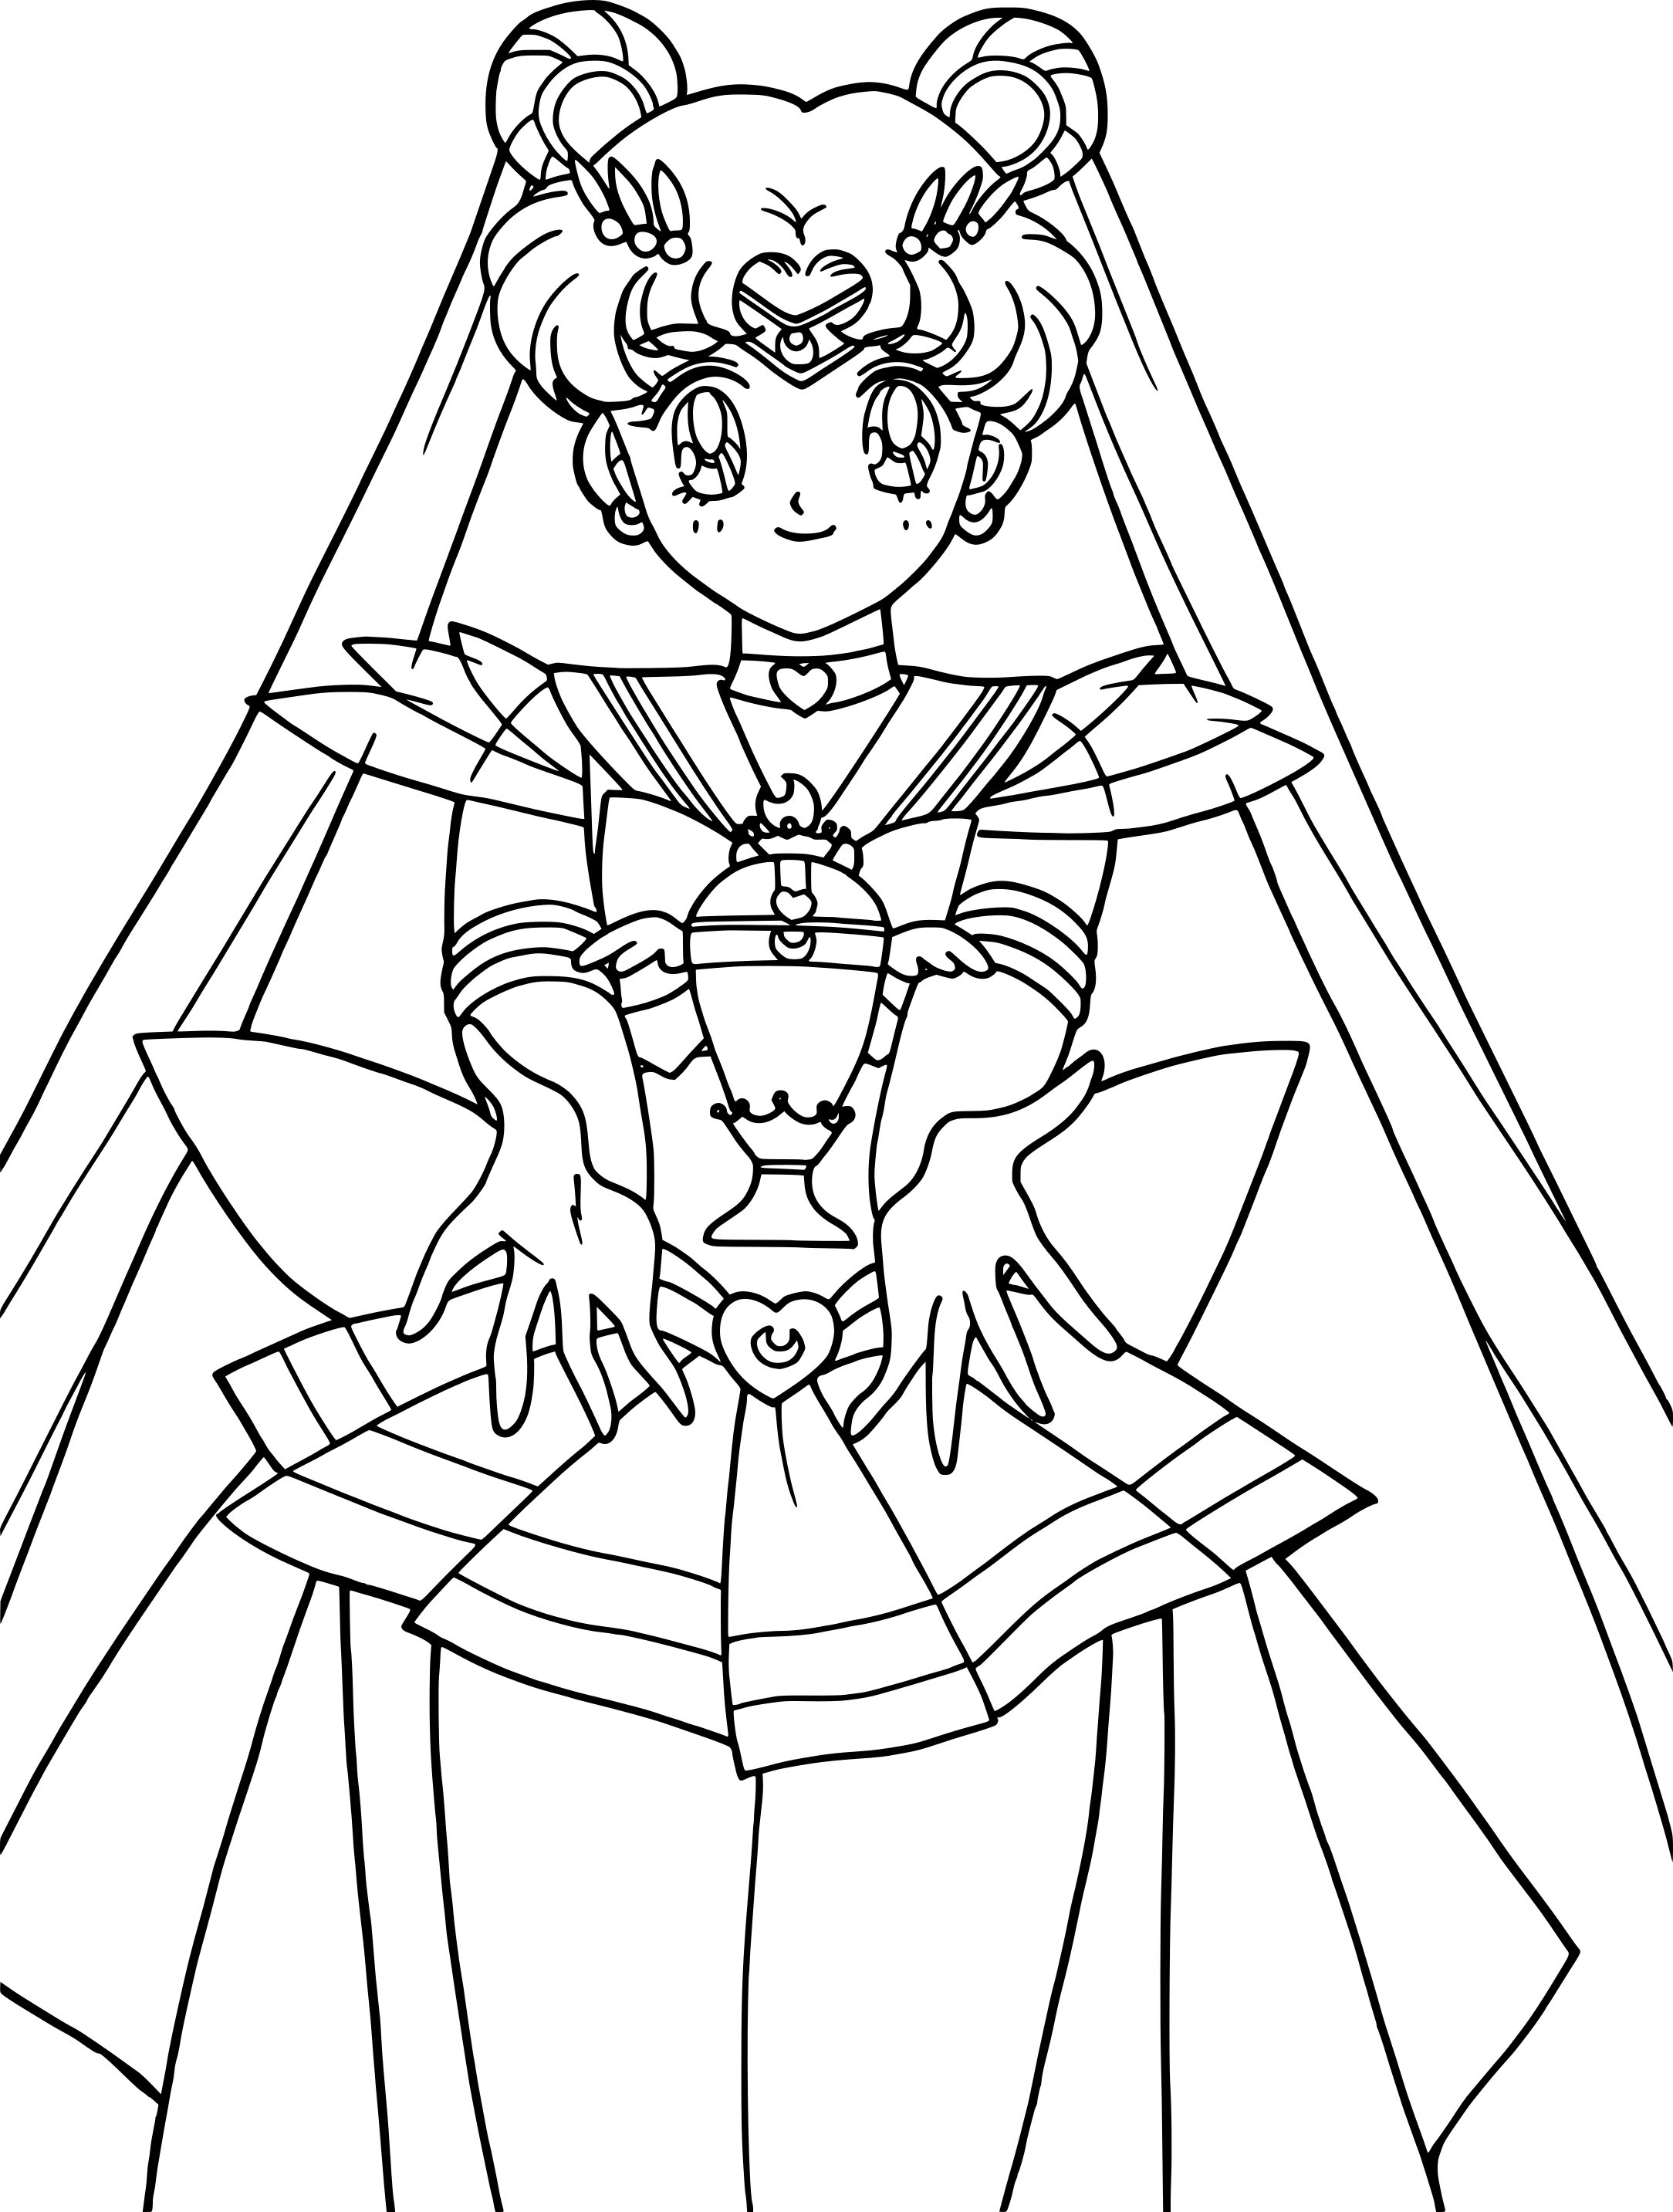 Coloriage Sailor Moon Crystal à Imprimer Gratuit